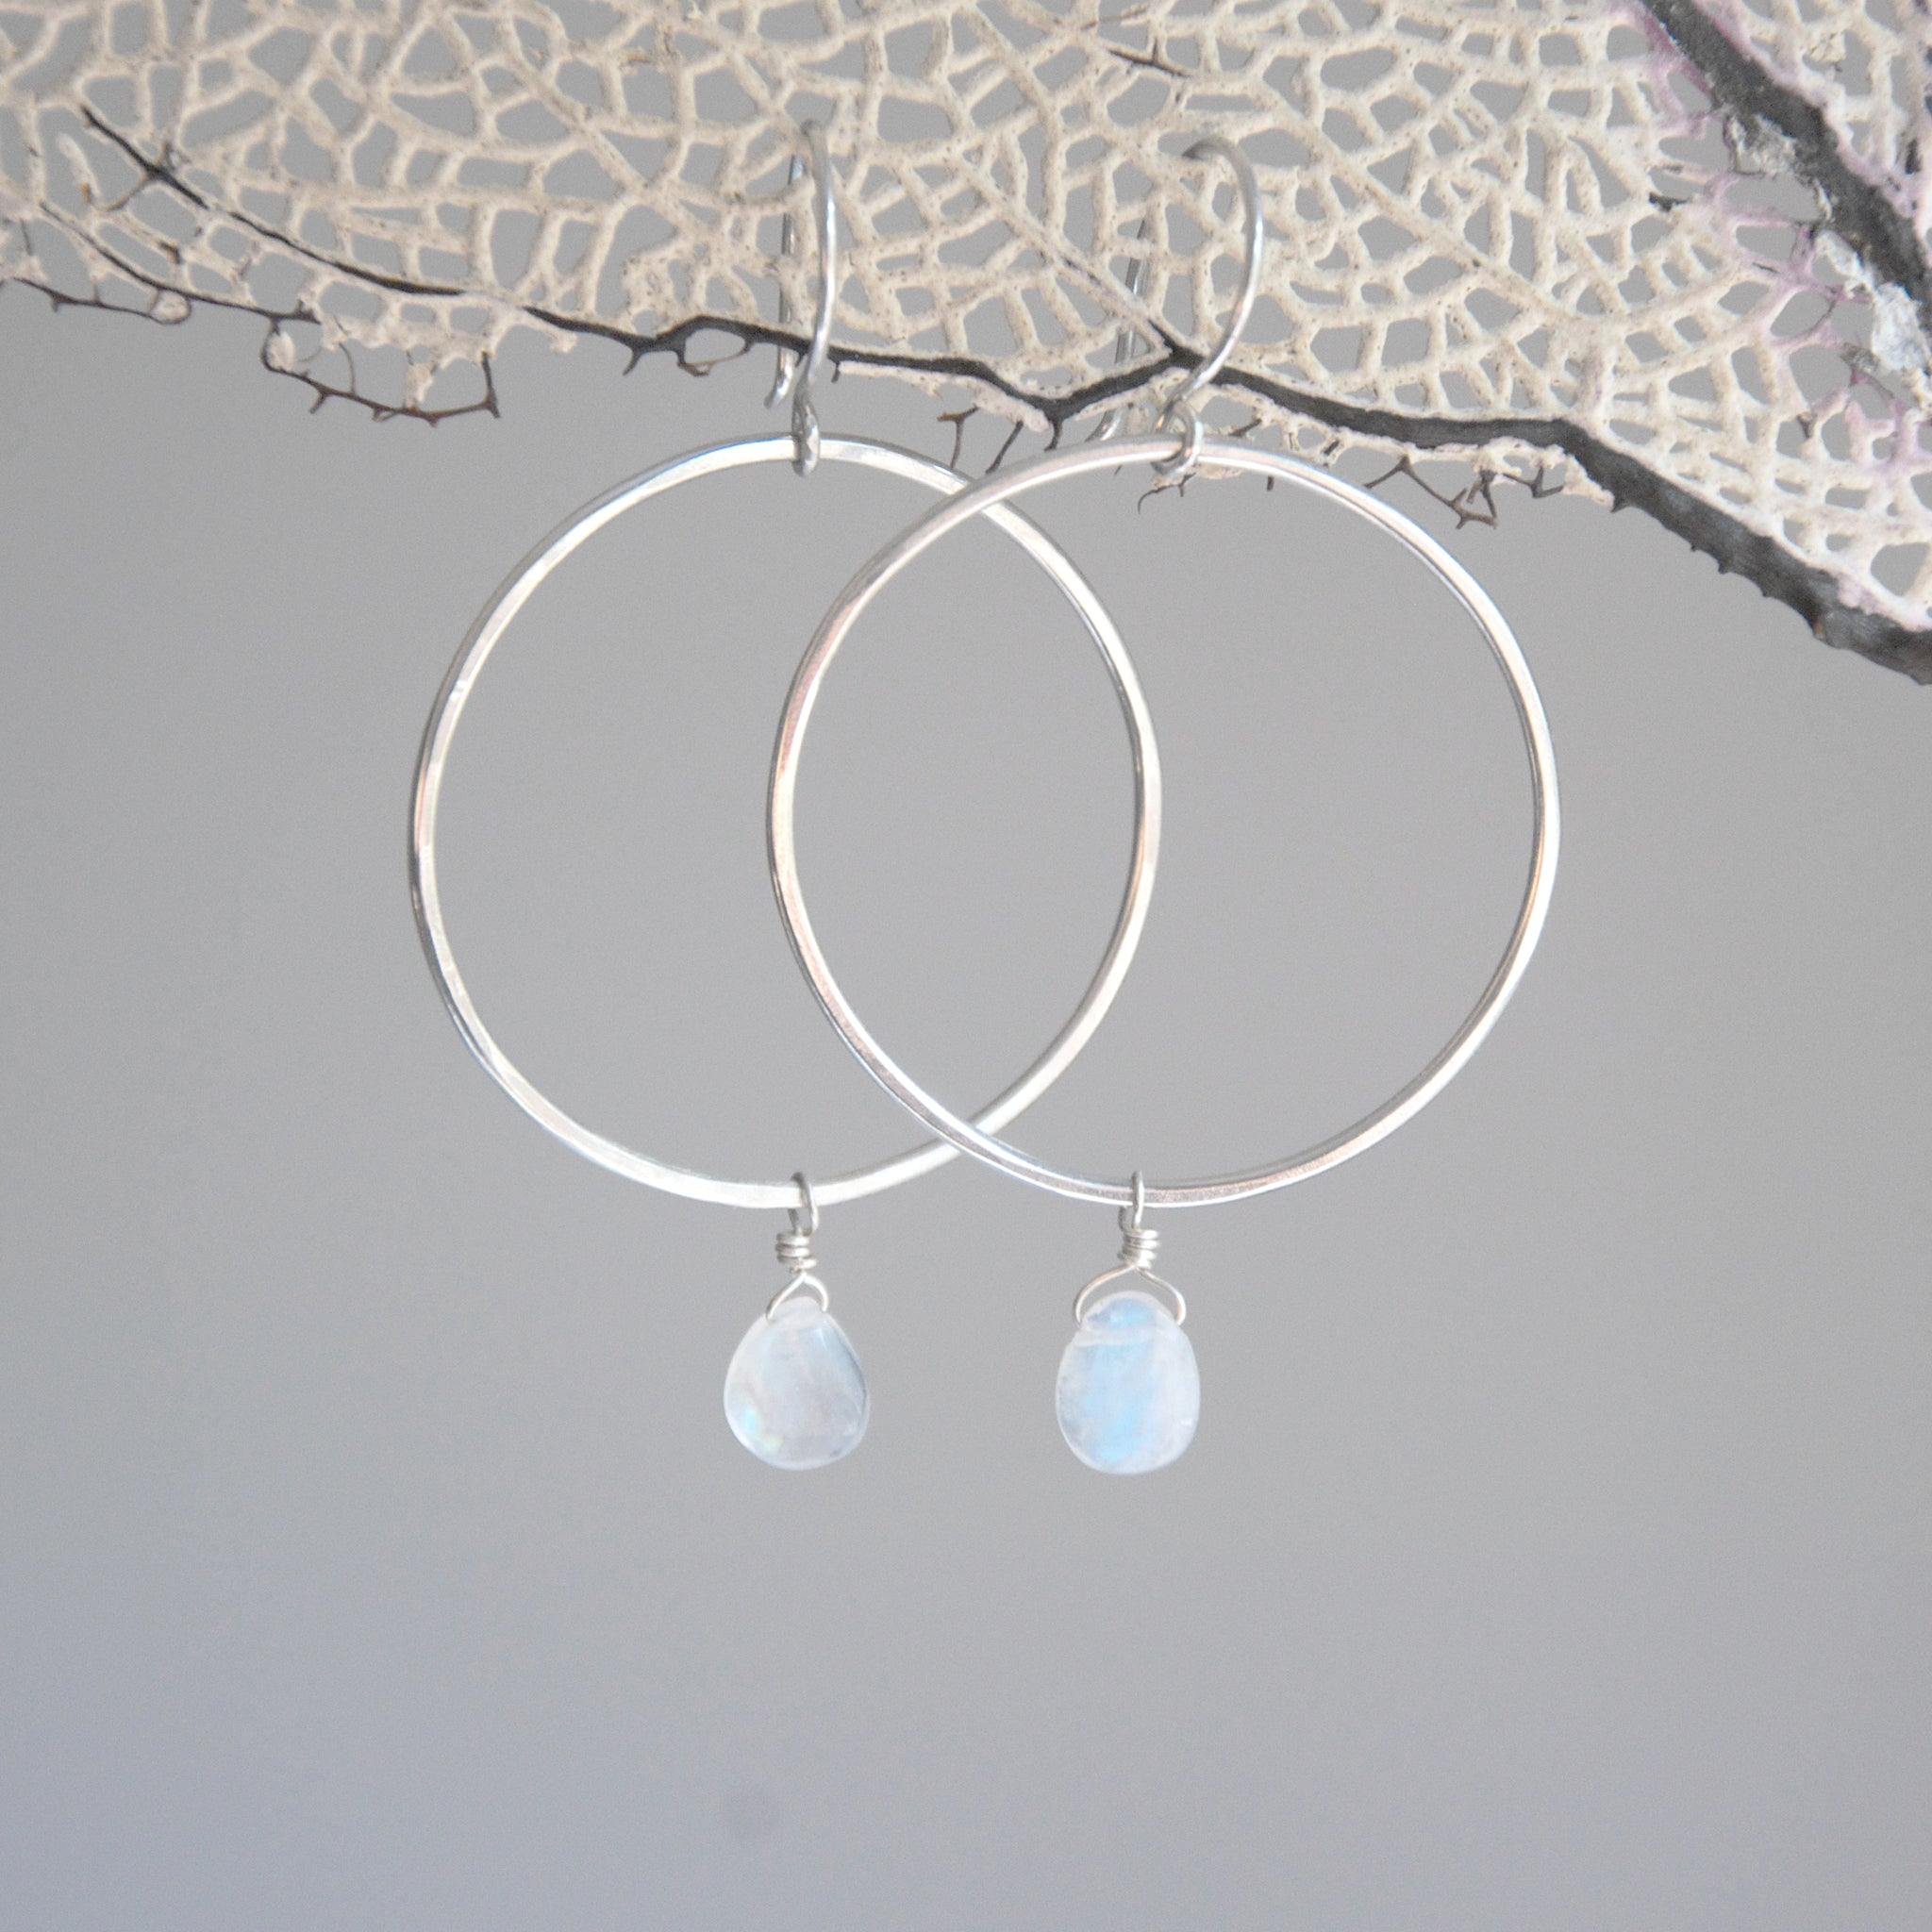 Organic-Handforged-Sterling-Silver-Hoops-With-Flashy-Rainbow-Moonstone-Closer-Up